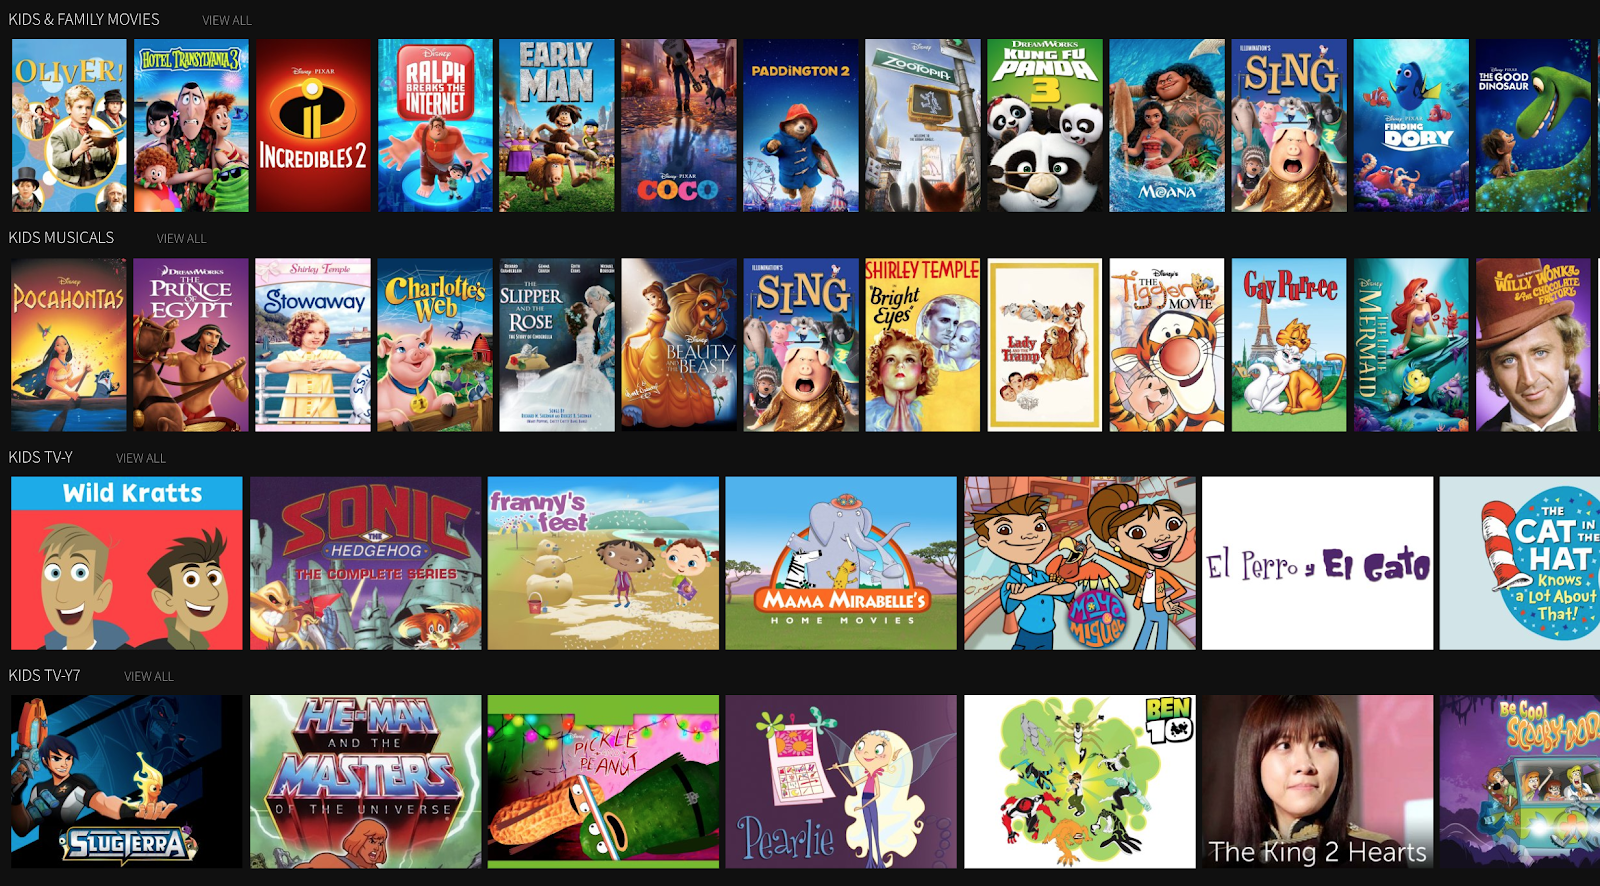 A DVR opens up a world of kid-friendly content for the little ones - all in one place.